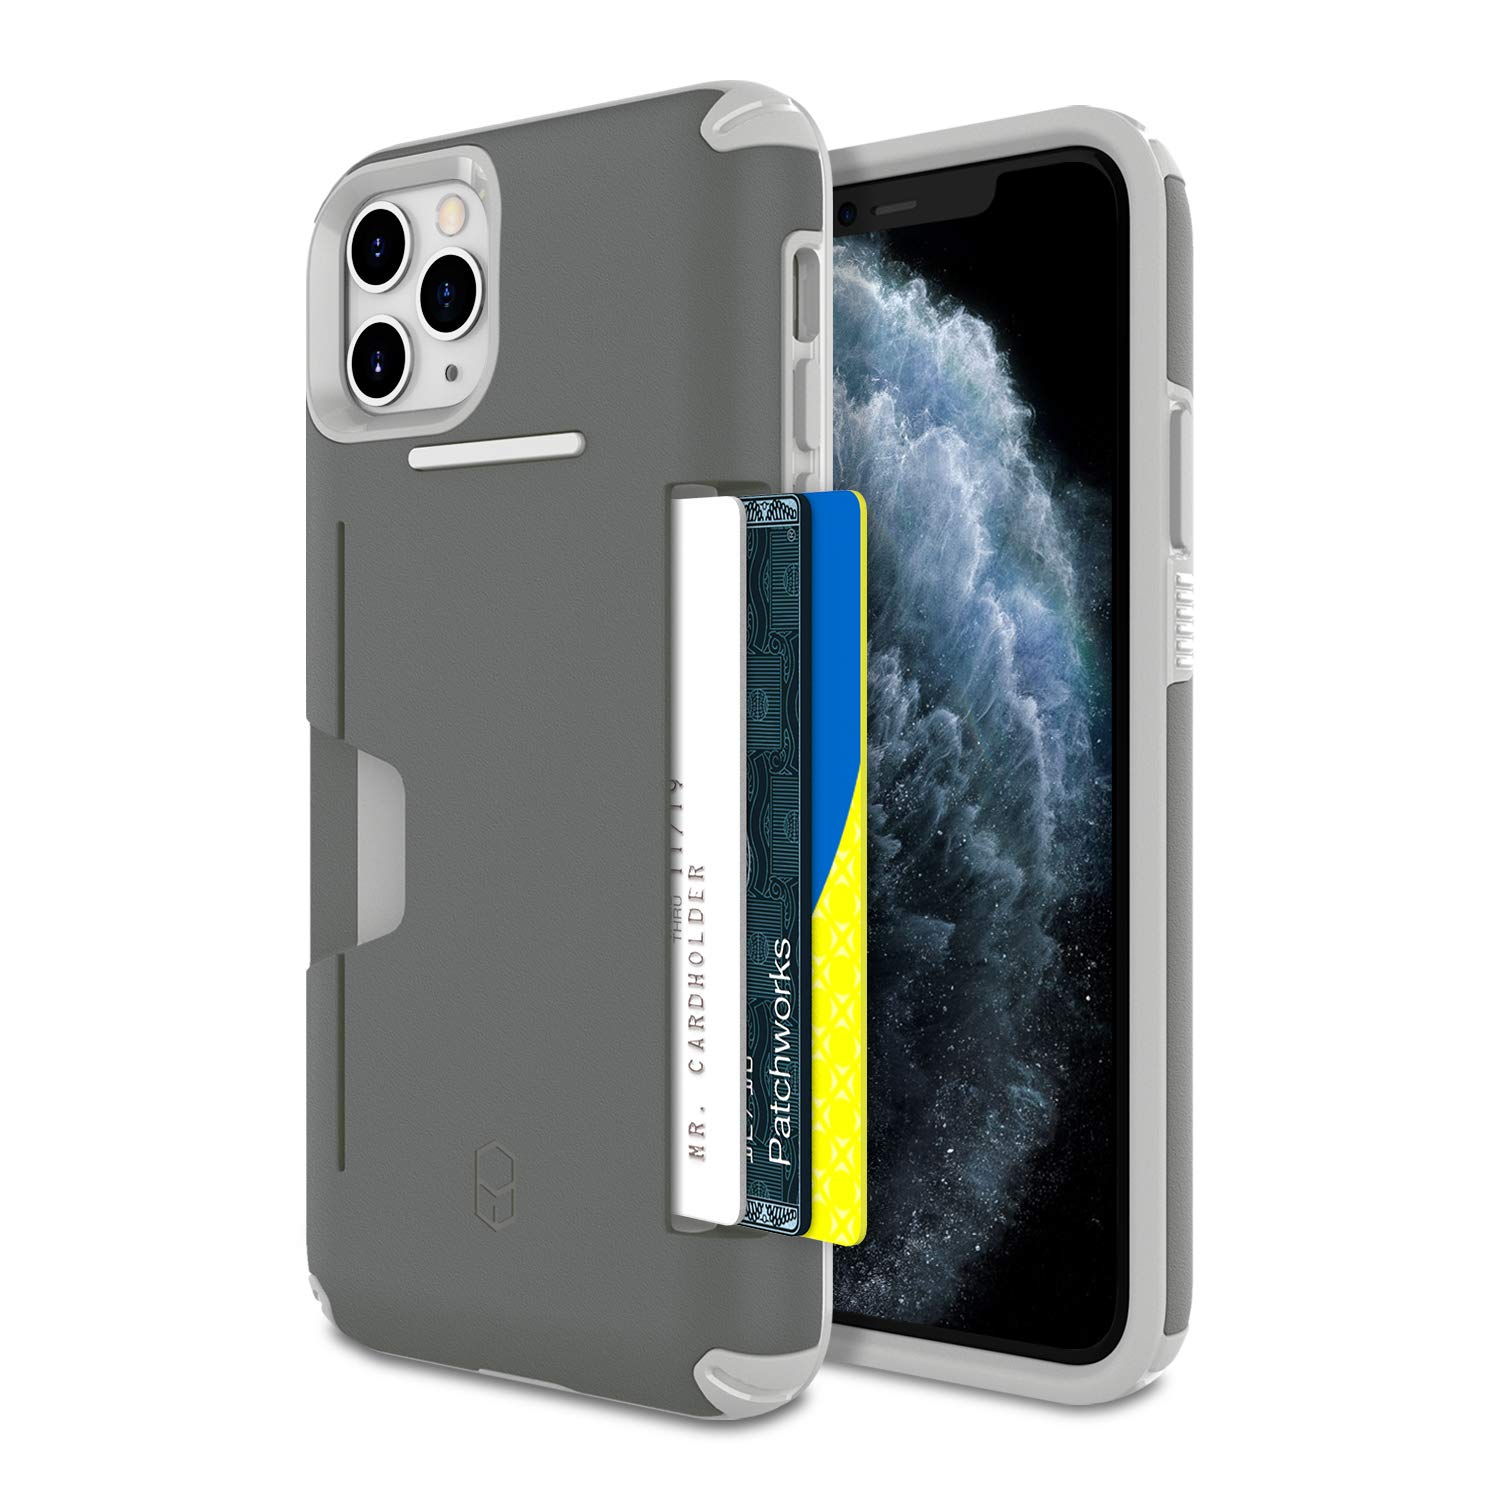 PATCHWORKS iPhone 11 Pro Max Case [Level Wallet Series] Rugged Hybrid Shockproof Dual Layer TPU + PC Case [Military Grade Drop Test Certified] [Wireless Charging Compatible], Gray